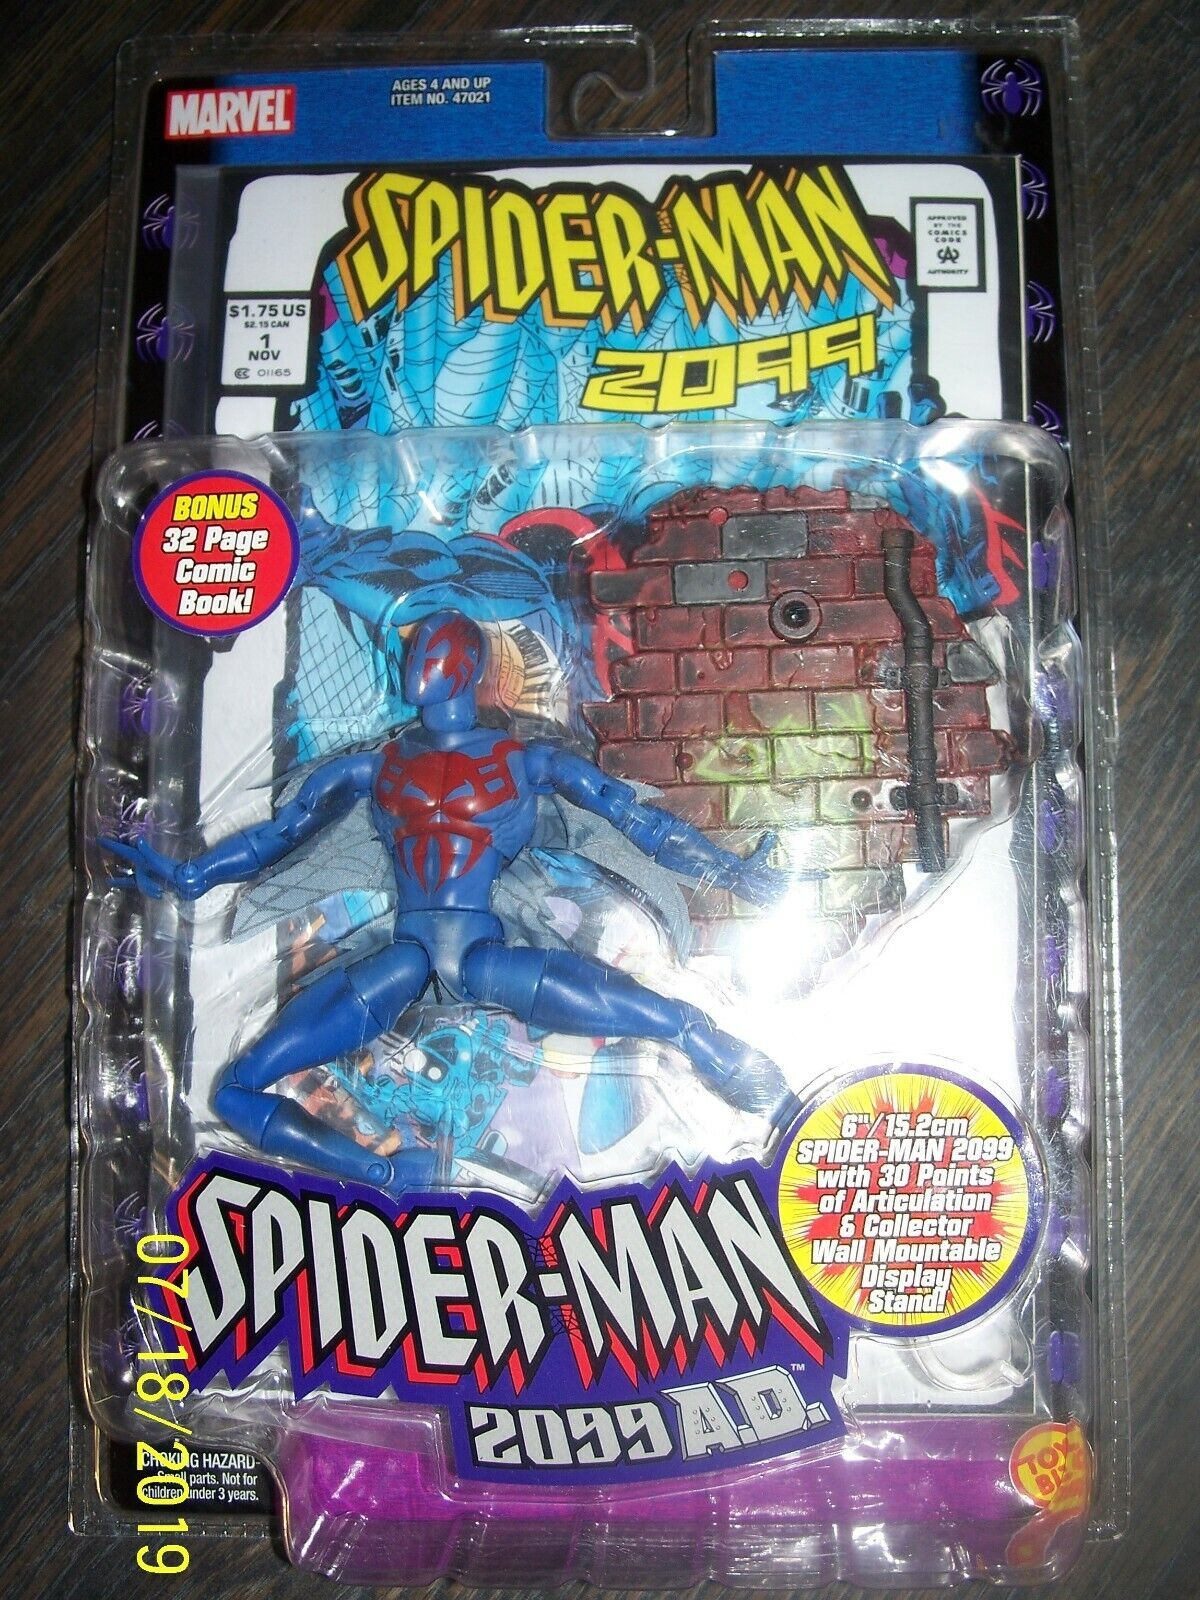 SPIDER-MAN 2099 TOYBIZ  FIGURE AND COMIC BRAND NEW SEALED  EXTREMELY RARE  NIB